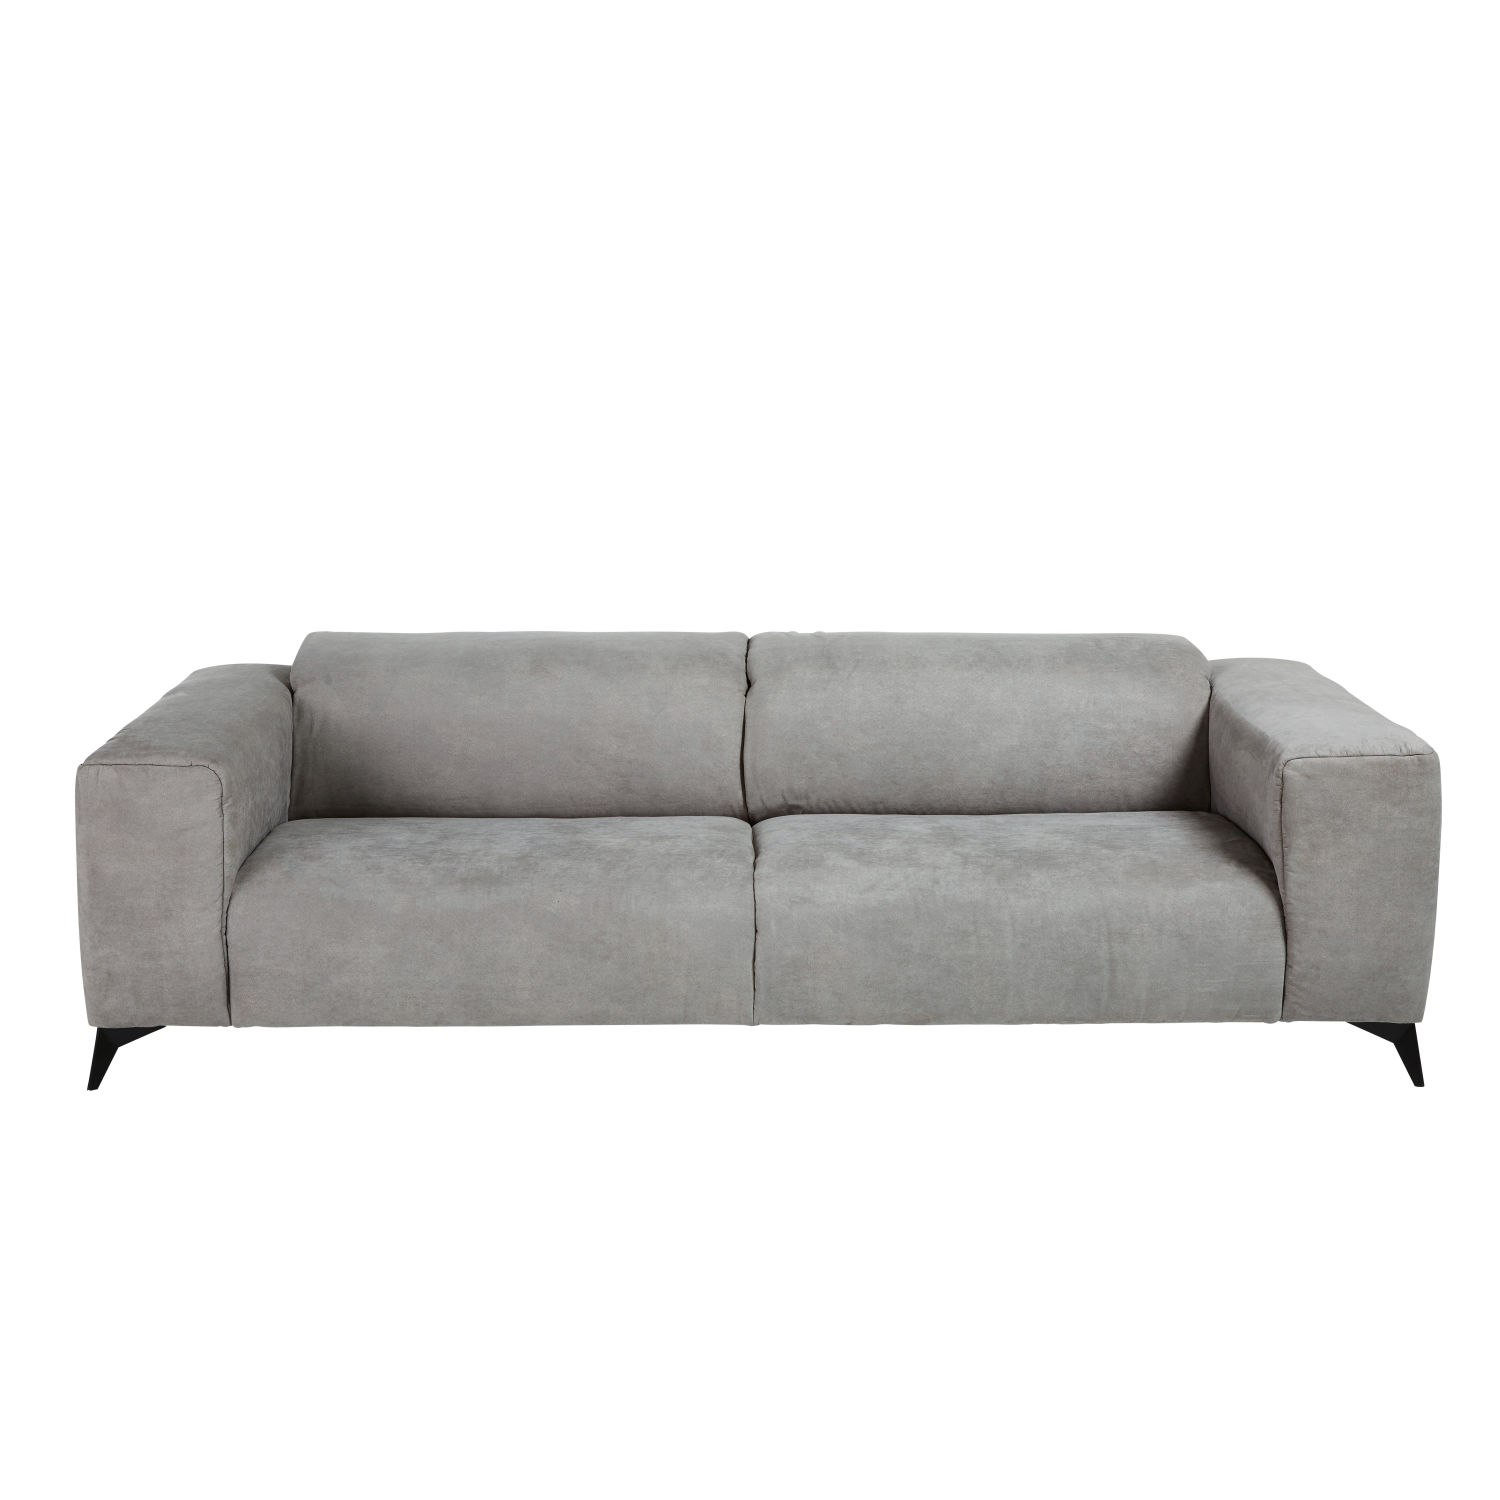 Salon Maison Du Monde Light Grey 3 Seater Microsuede Sofa With Headrests Maisons Du Monde